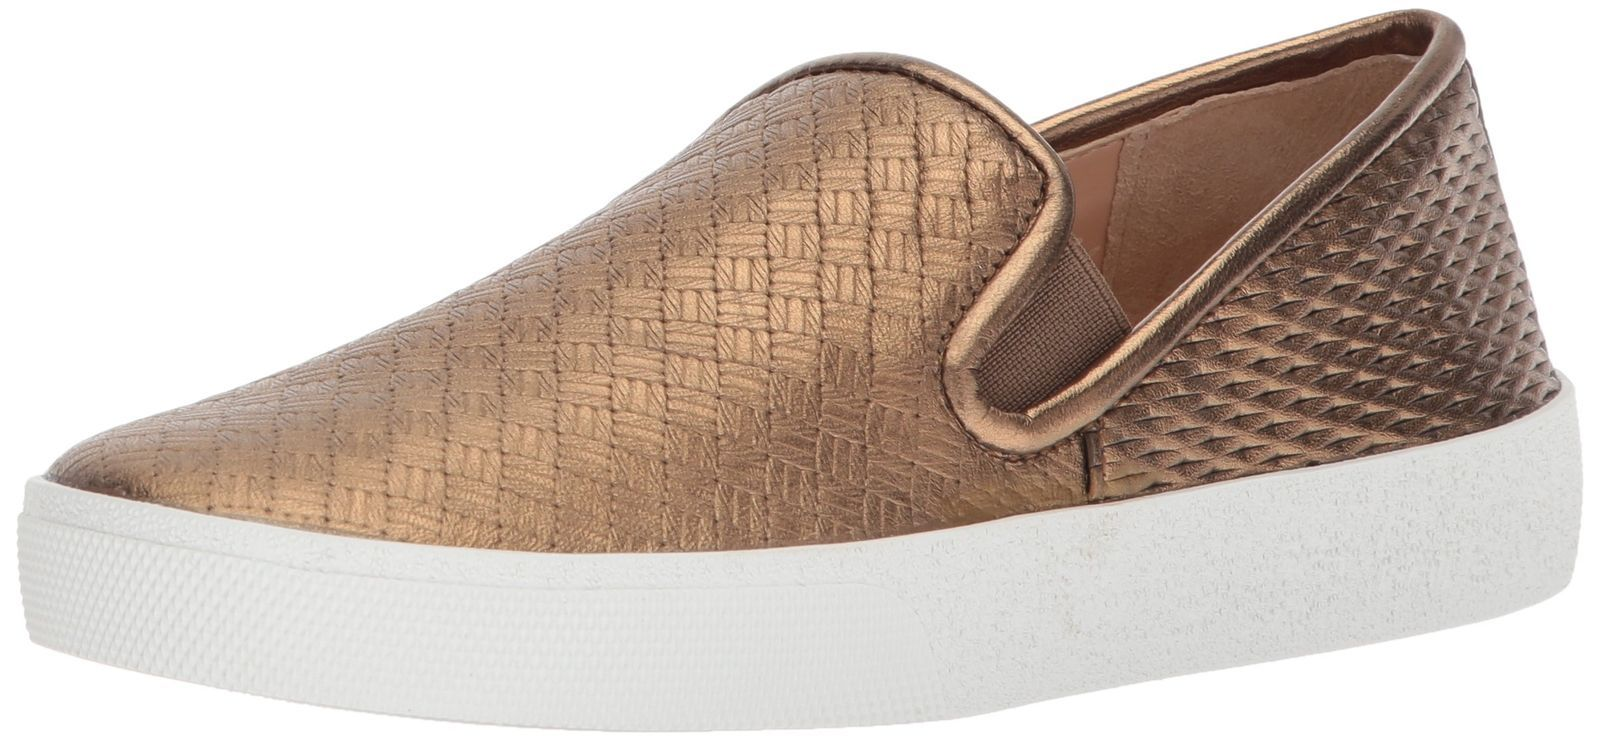 5897cde61ac08 VINCE CAMUTO WOMEN S CARIANA SNEAKER BRONZE 9 M US -  49.99